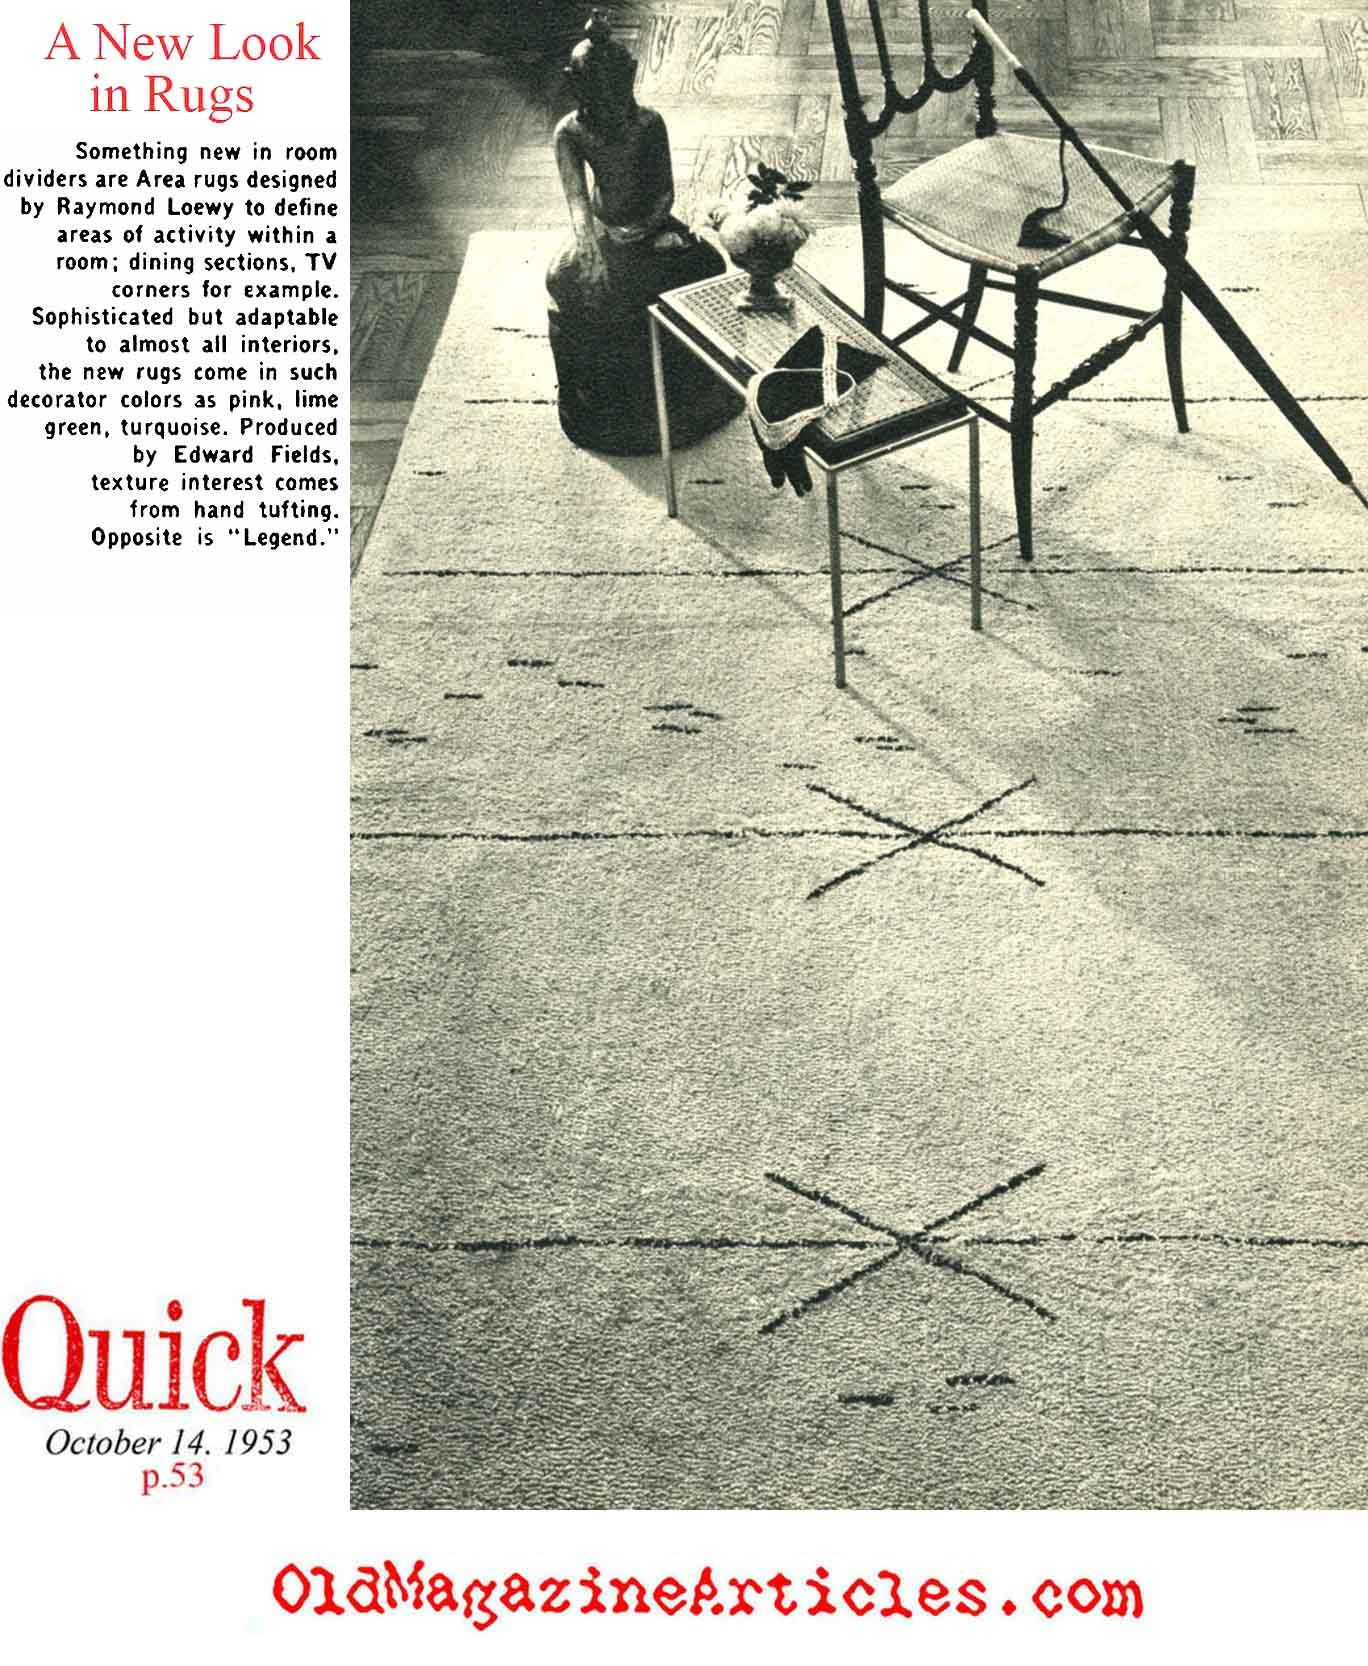 A Rug by Raymond Loewy (Quick Magazine, 1953)